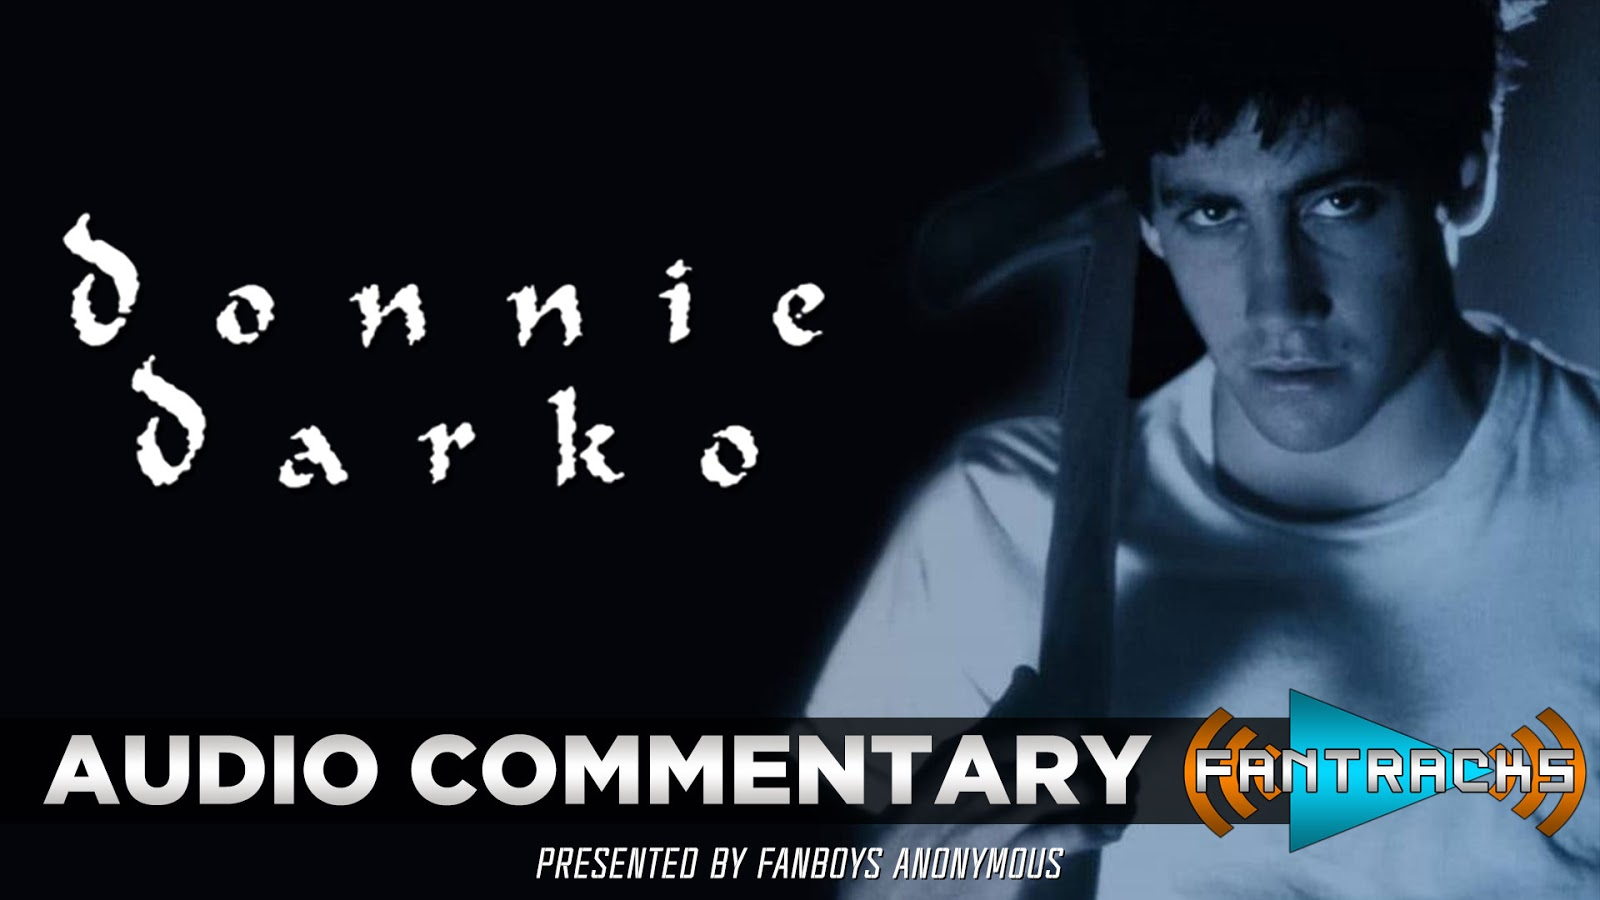 FanTracks Donnie Darko audio commentary